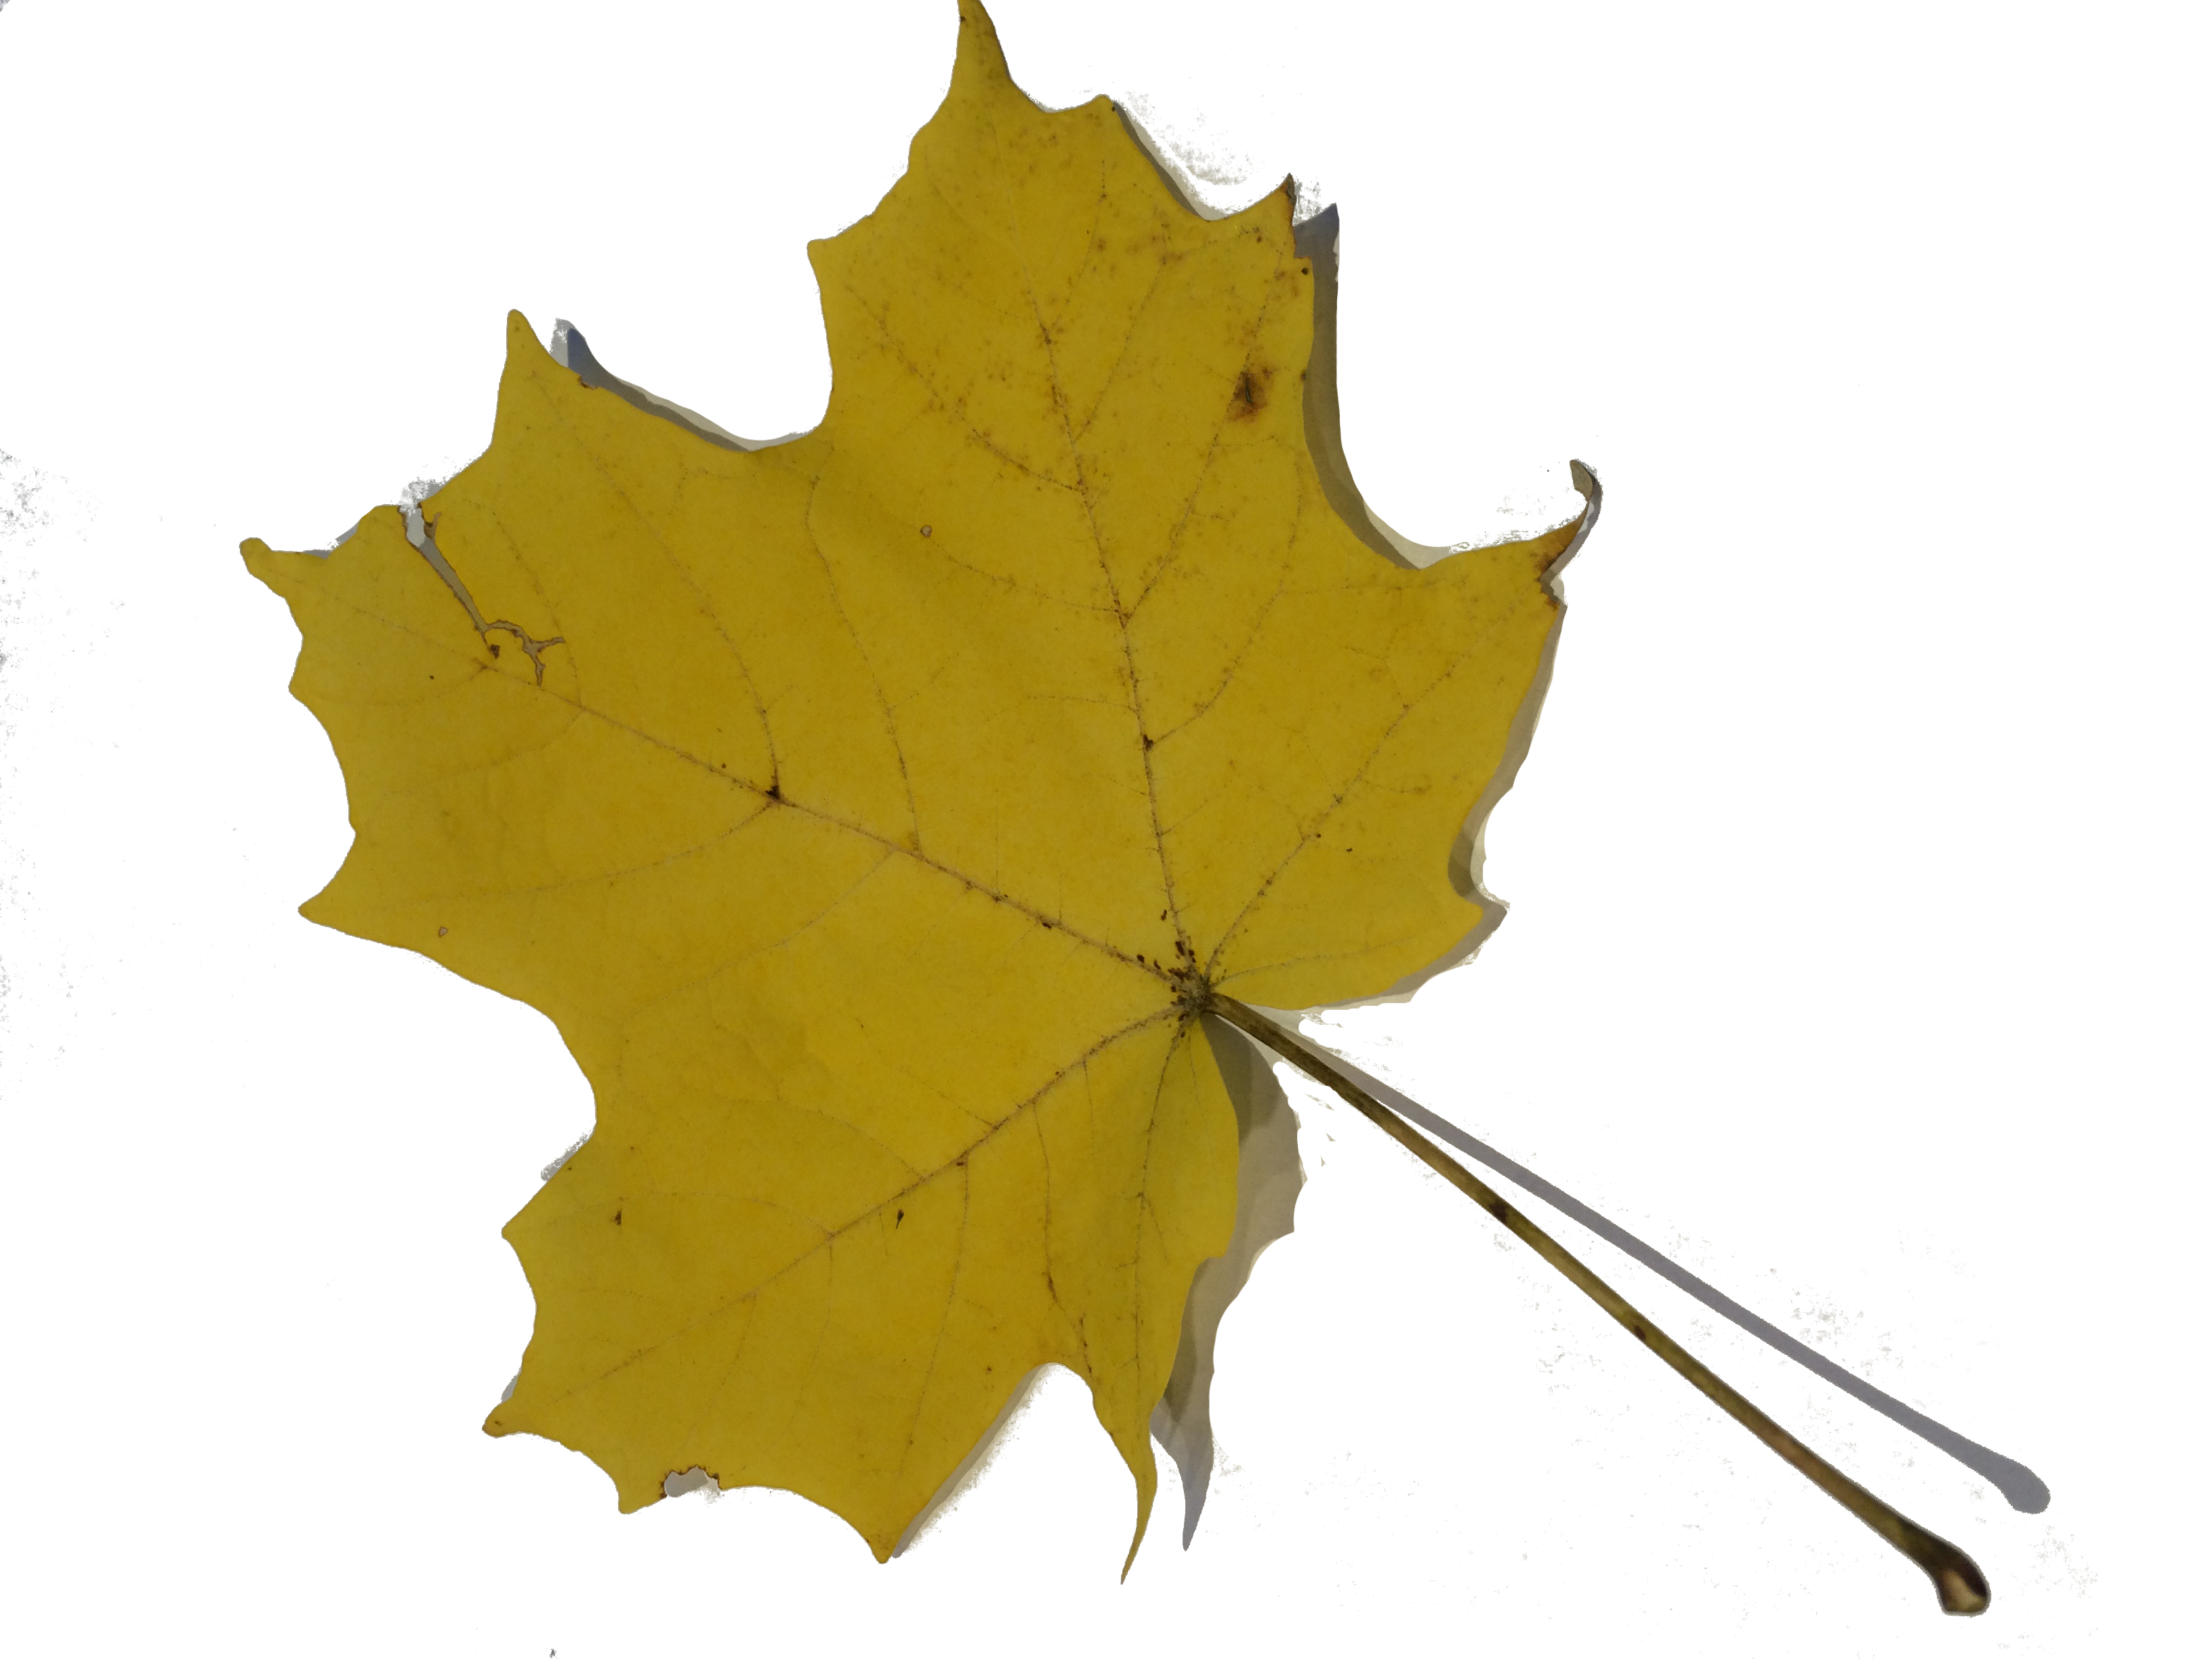 gwl/static/gwl/images/new-leaves/yellow-1.png